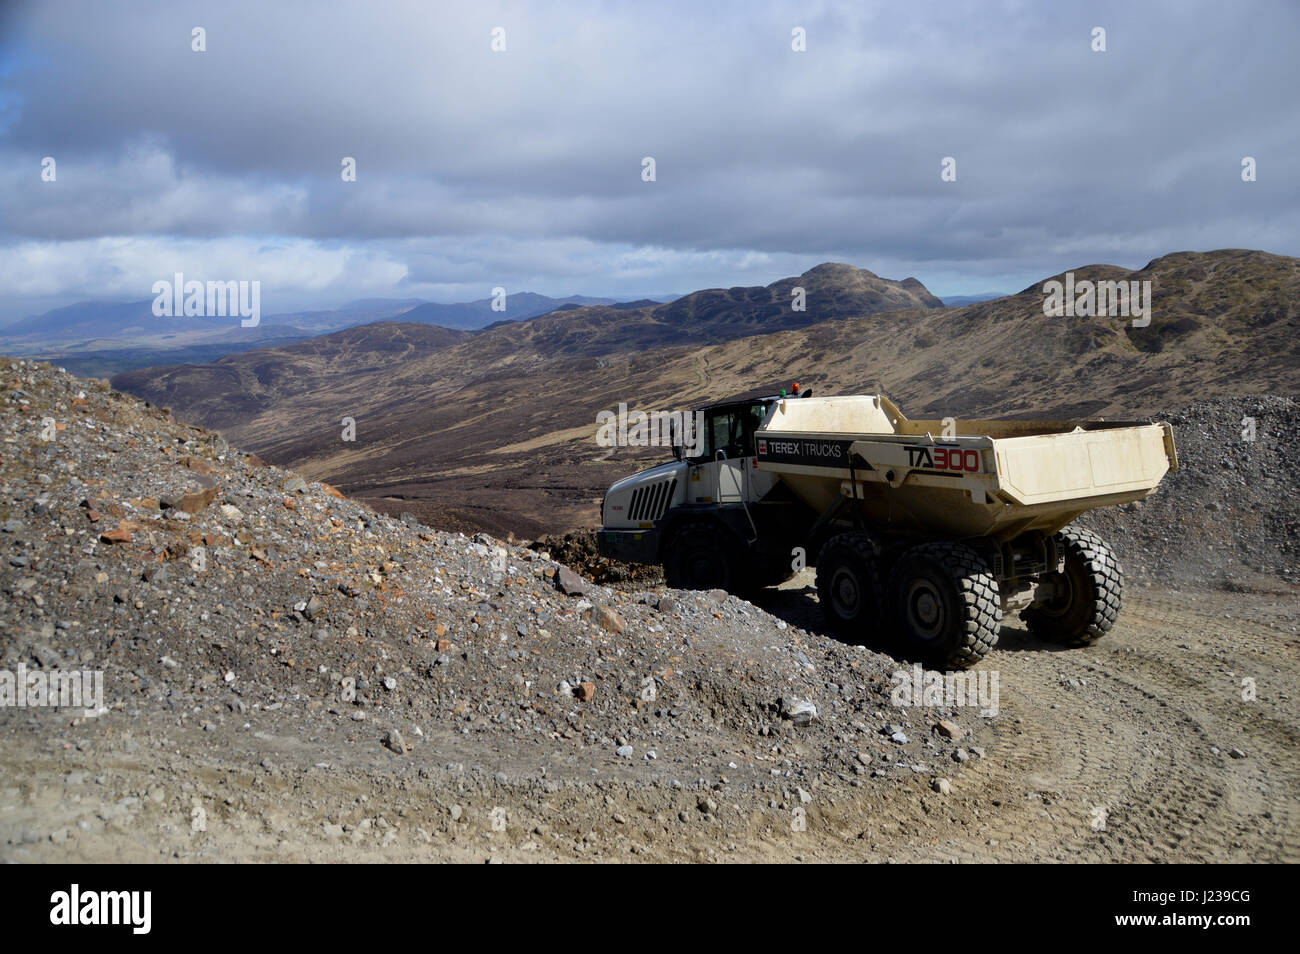 The TA300 Terex Articulated Dump Truck used in Mining Operations at Foss Barytes Mine near Aberfeldy, Tay Forest - Stock Image